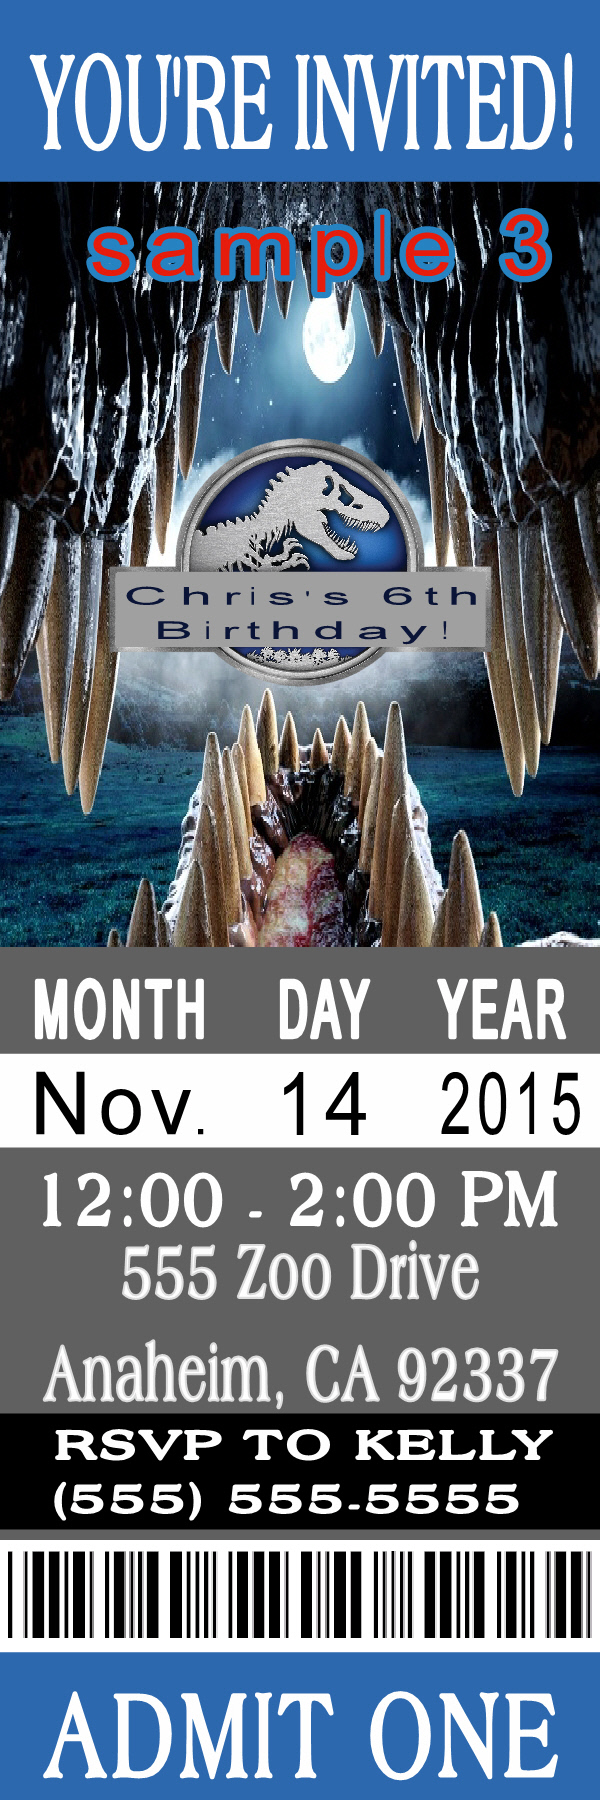 bday party invitation mail%0A Jurassic World ticket Birthday Invitation Click on the image twice to  place orders or follow